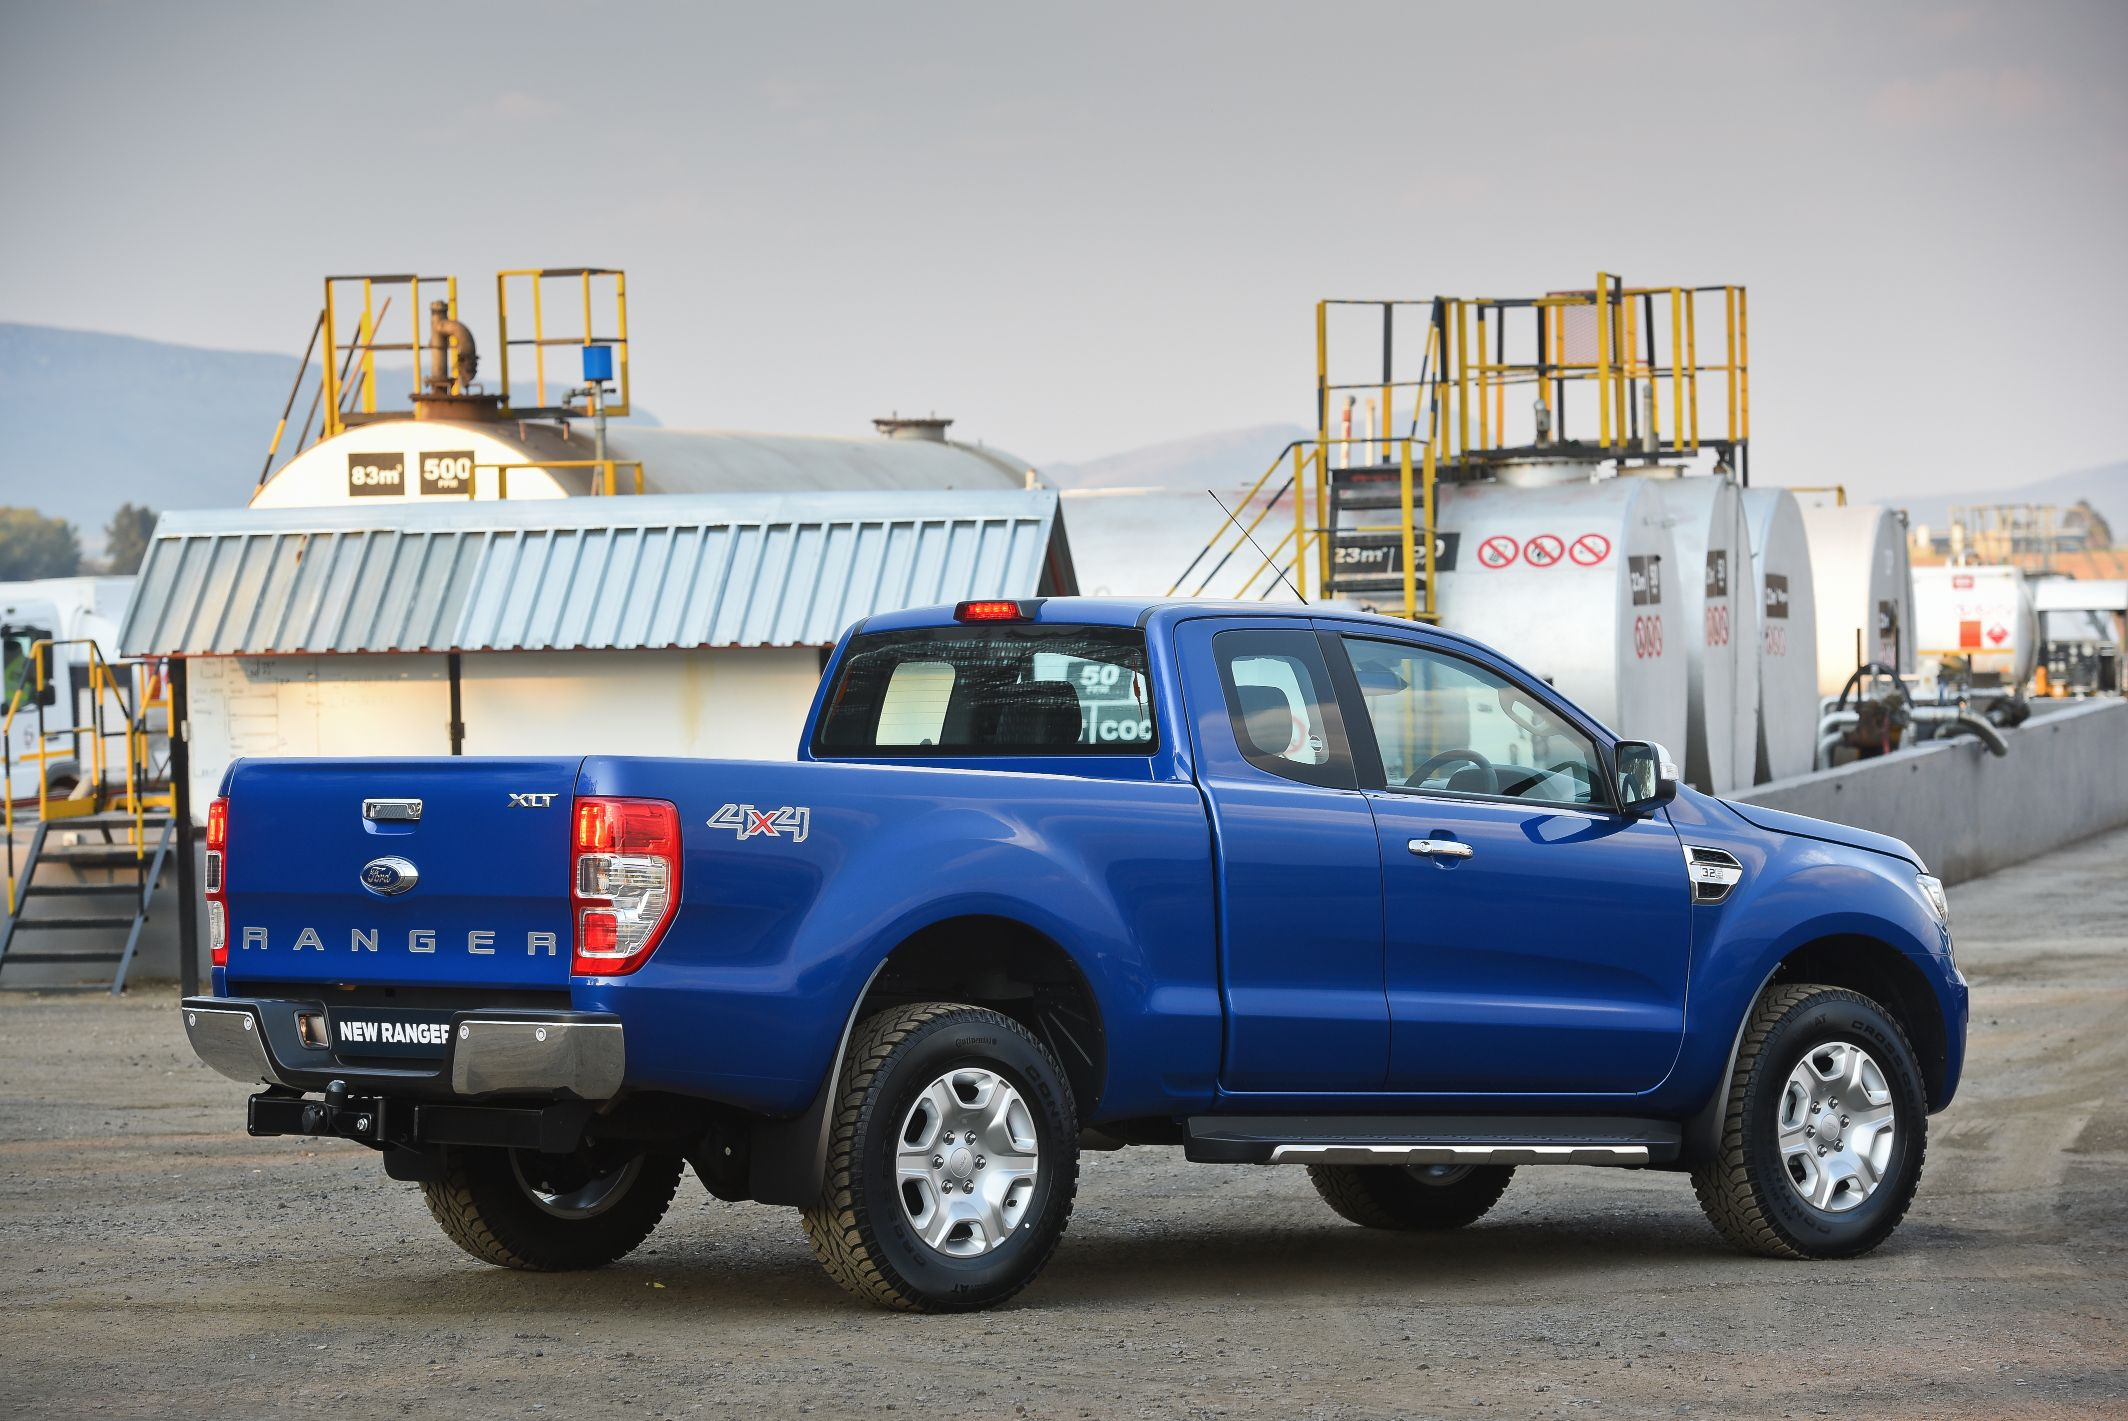 off road ford ecosport with 2016 Ford Ranger Prepares To Hit European Showrooms 104367 on 147085 Pneus Bf Goodrich 235 70 R16 Tr4 2007 A as well Ford Bronco 2020 Concept in addition Dacia Duster Received An Off Road Tuning From German Lzparts 4 together with Off Road Wheels Rims Pinatubo moreover Review.